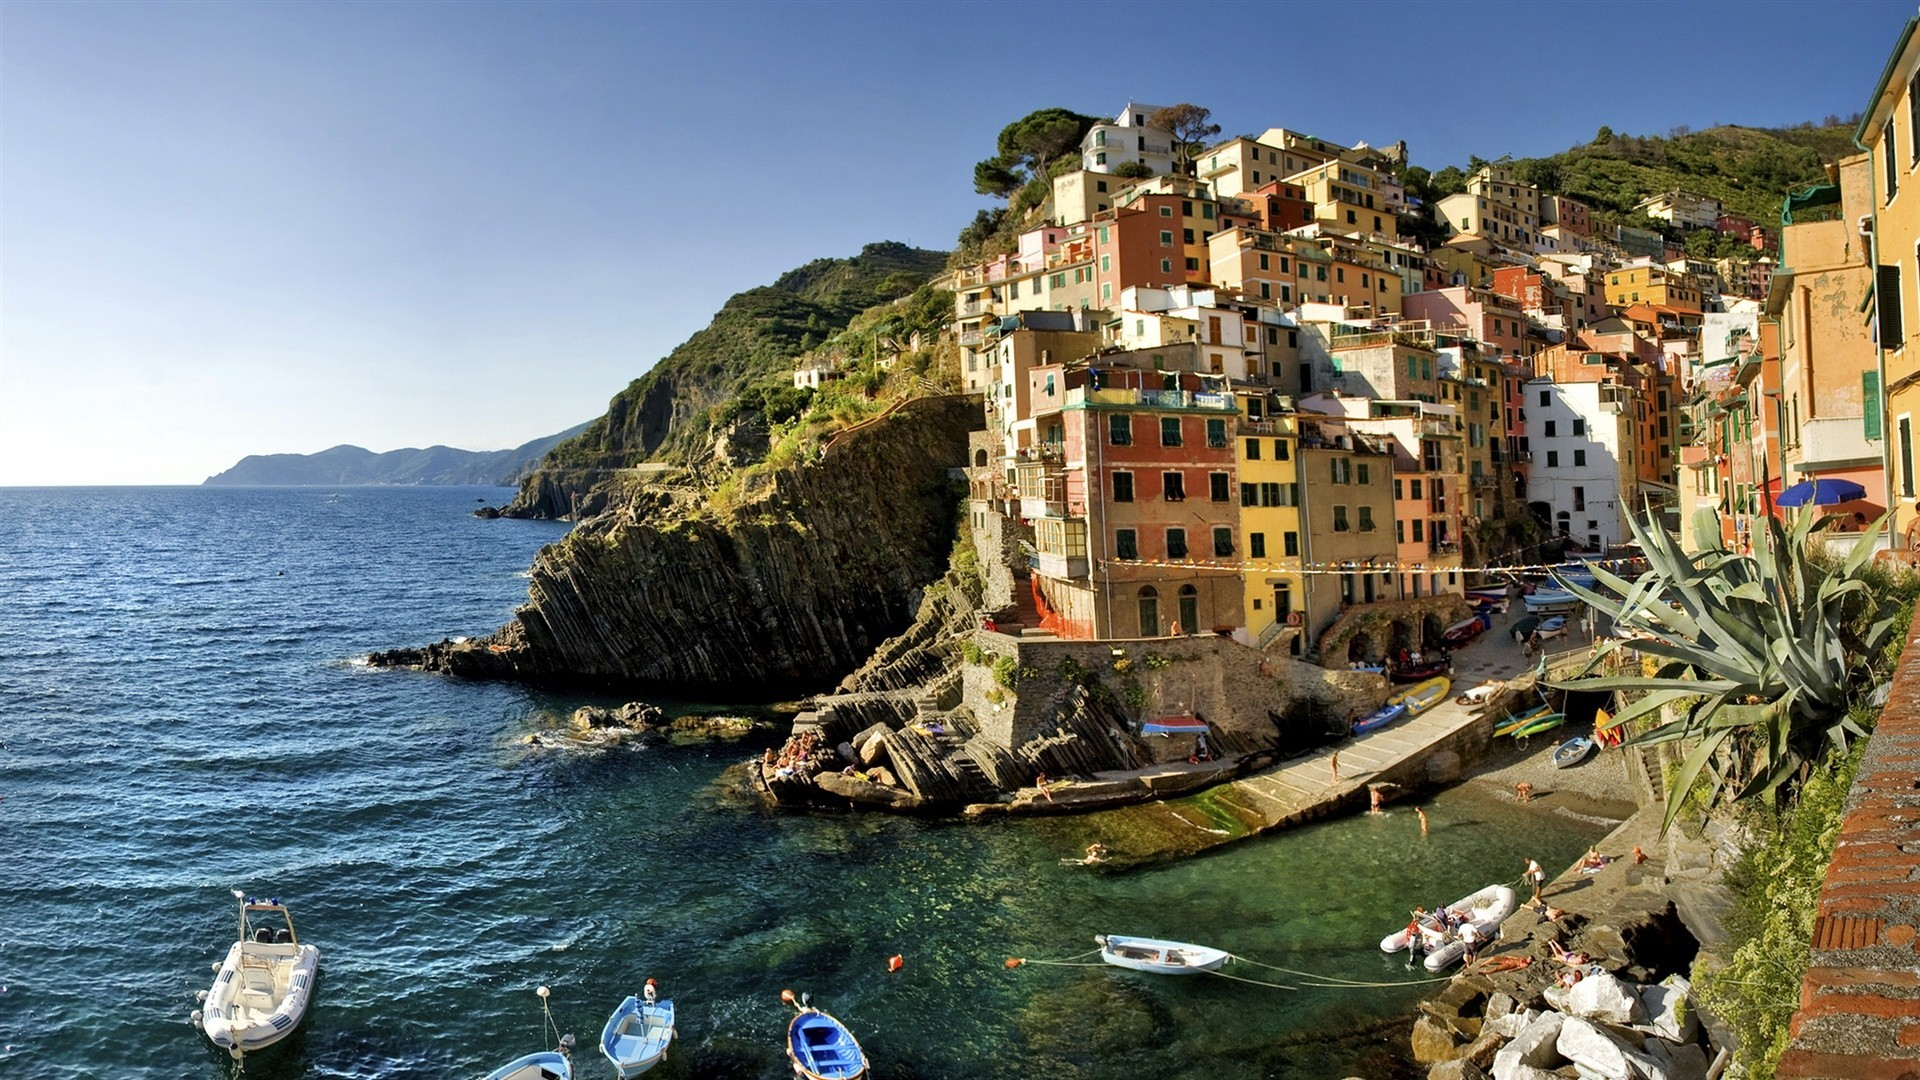 1920x1080  Wallpaper italy, beach, boats, houses